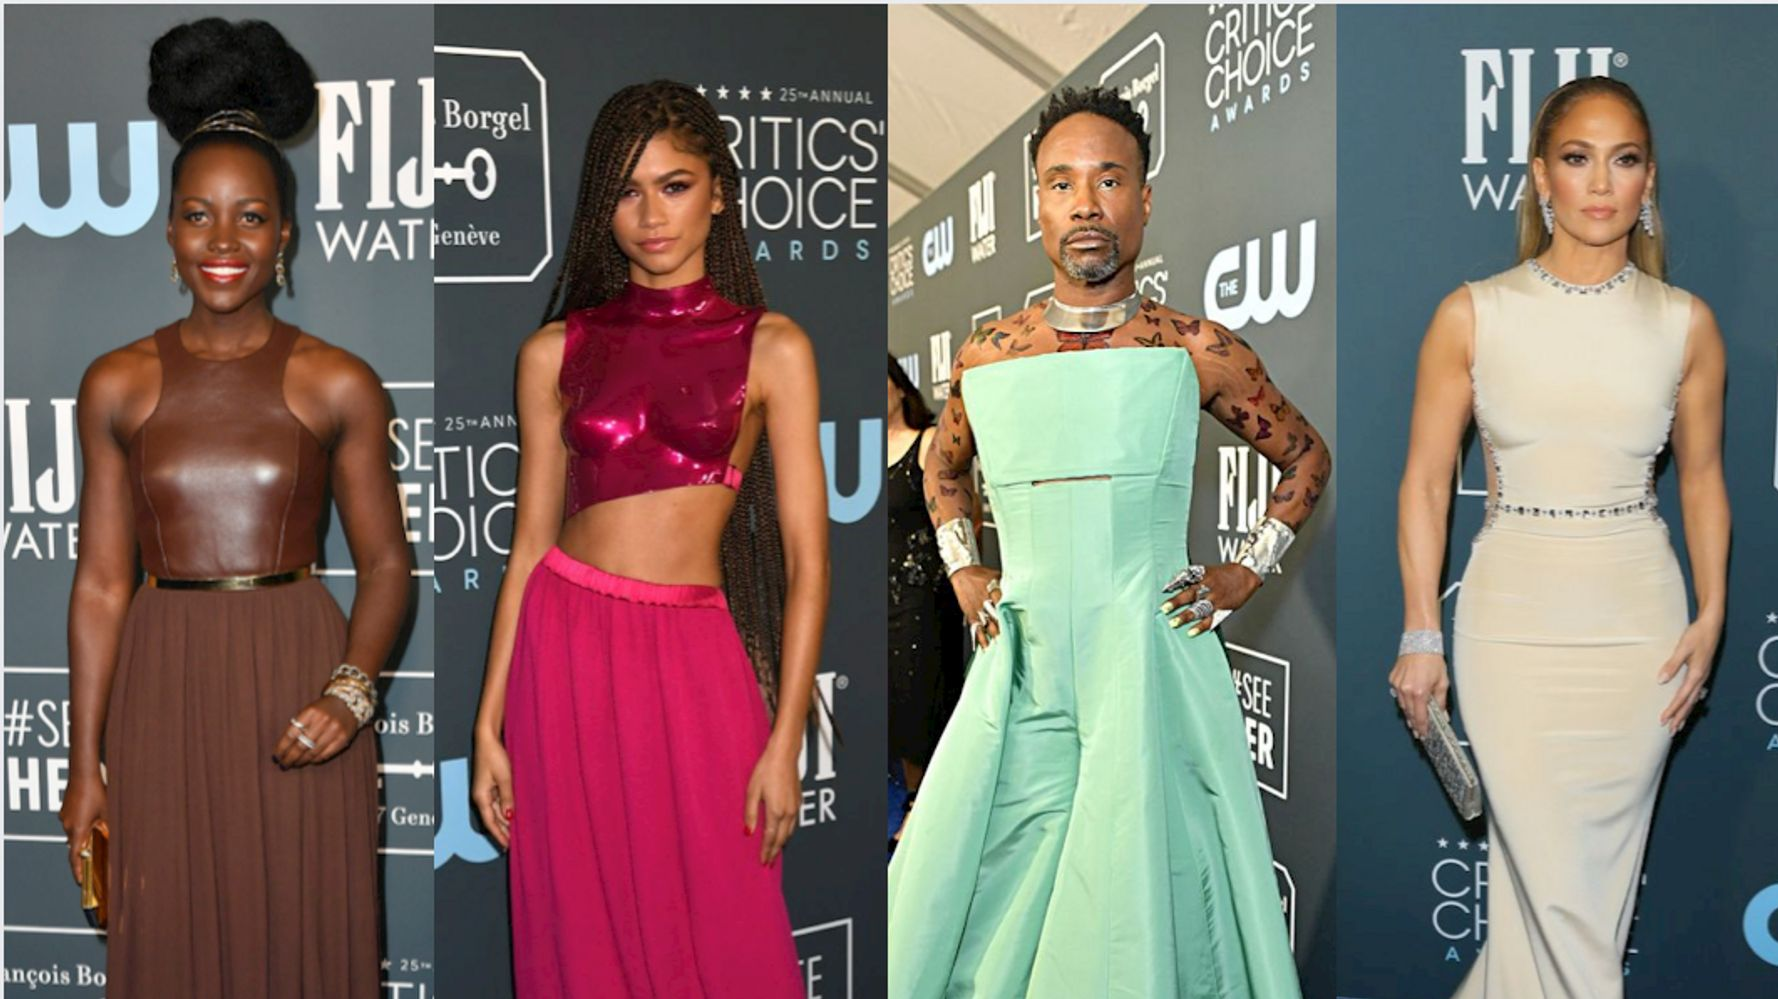 2020 Critics Choice Awards All The Fashion From The Red Carpet Huffpost